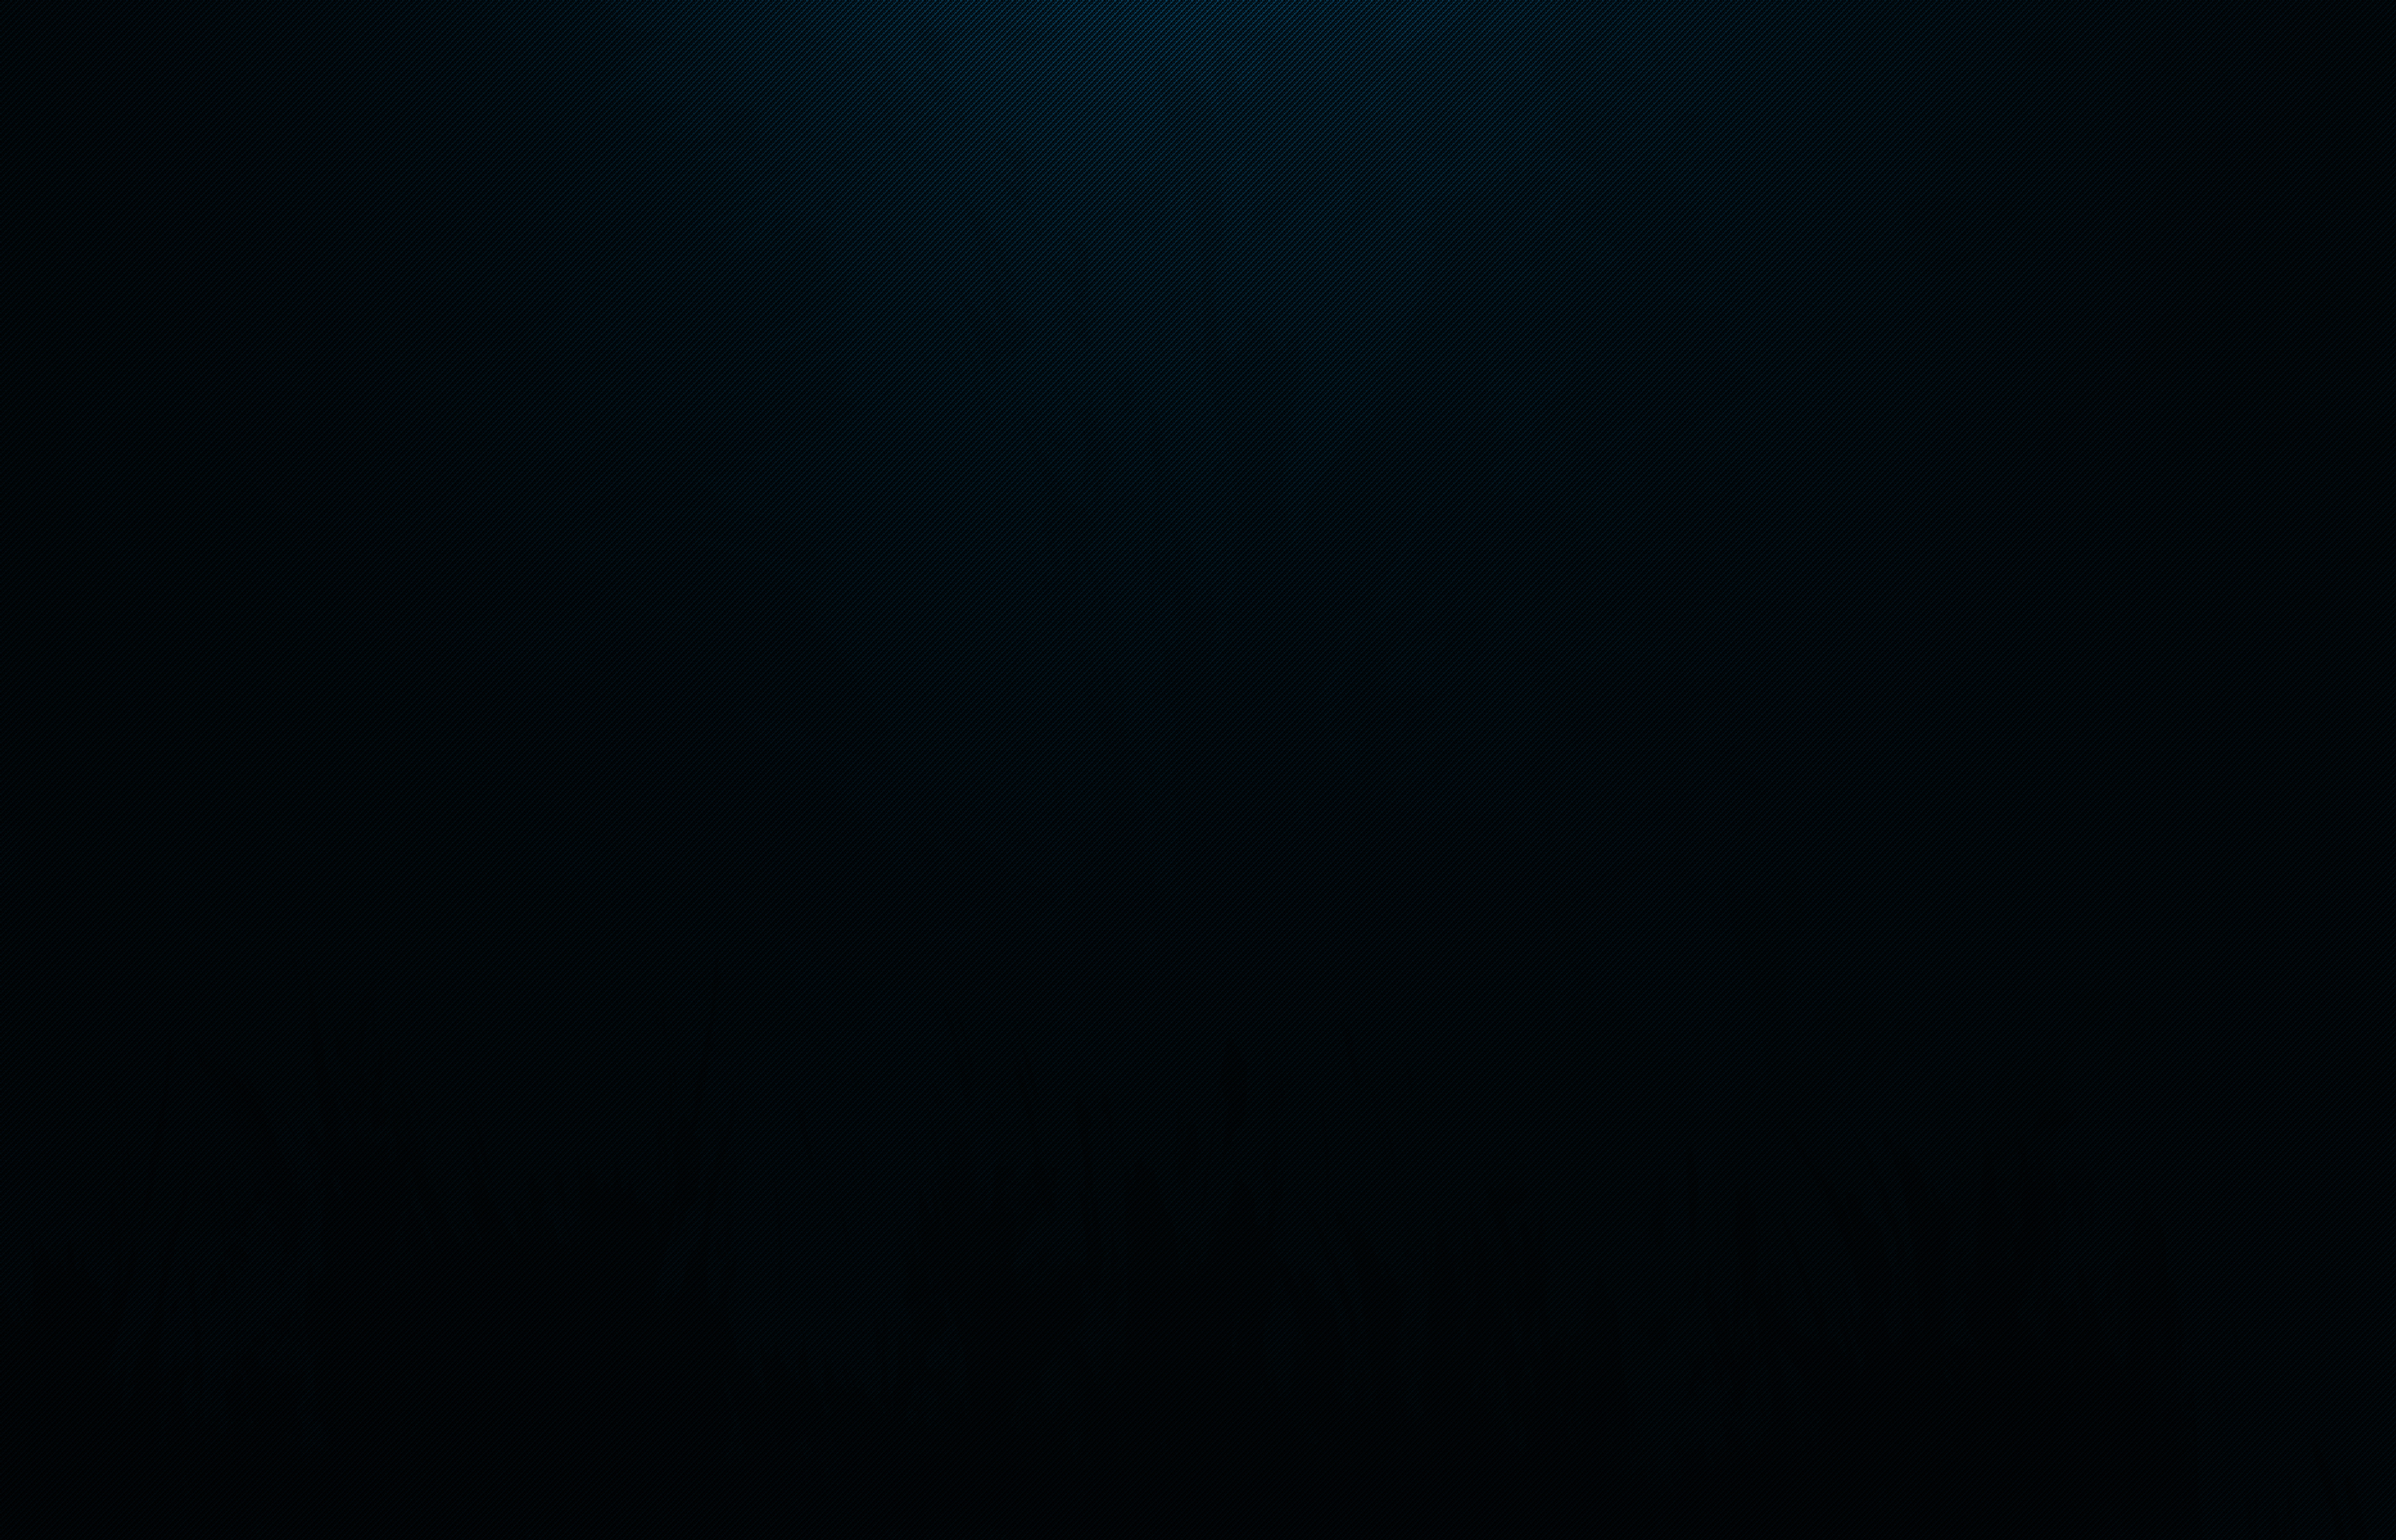 dark blue background wallpaper wallpapersafari